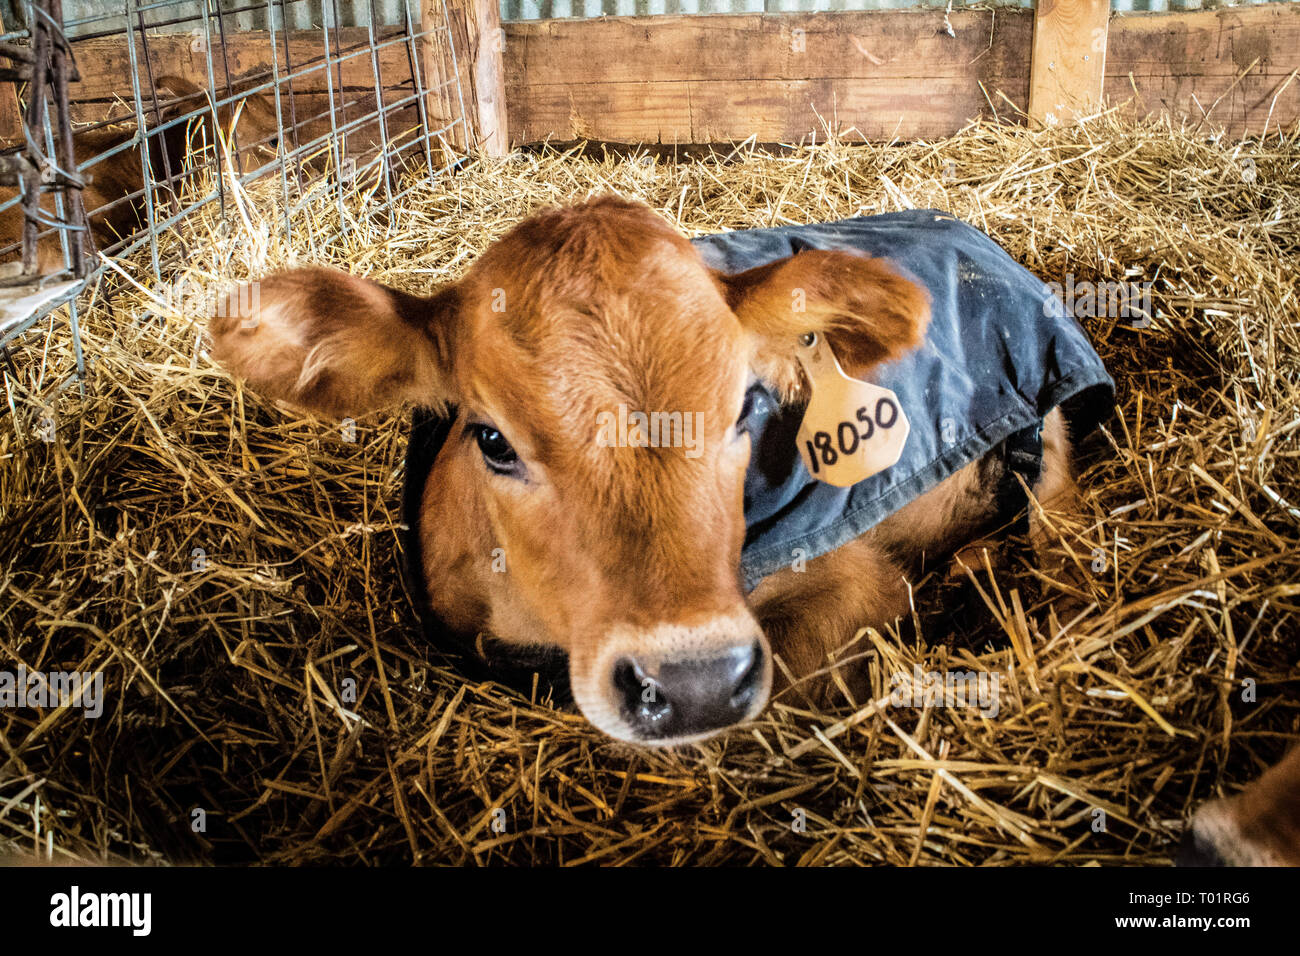 Young Jersey dairy calf staying warm inside calf barn during cool Illinois autumn, one of many on a 7 generation dairy farm - Stock Image